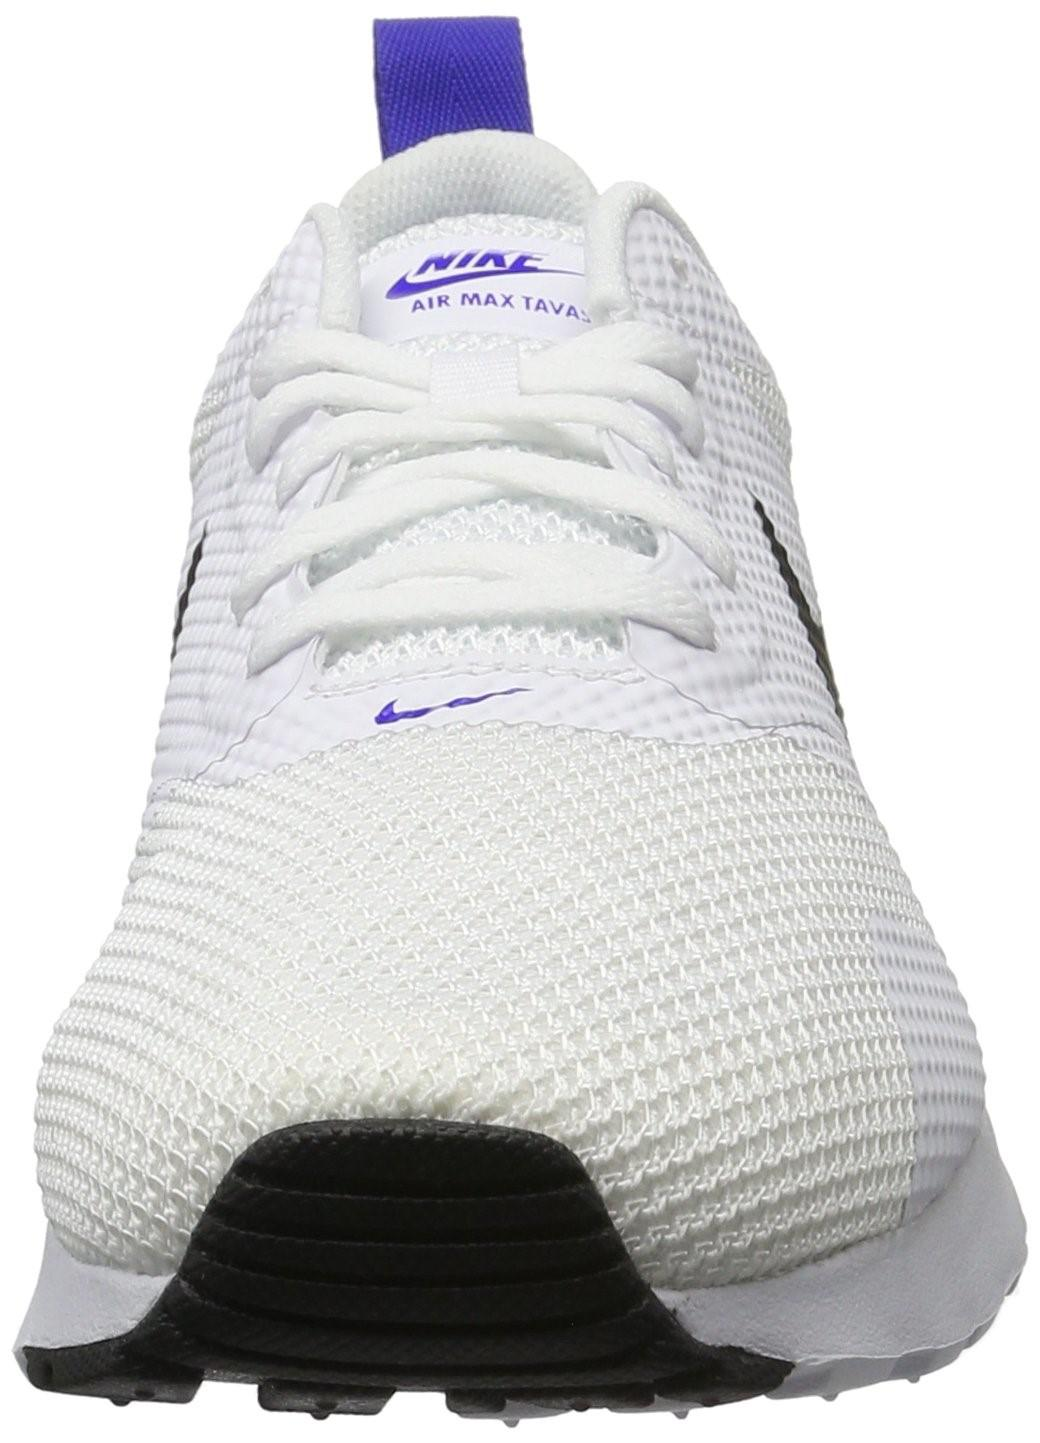 new style a6f7f 25dfc Lyst - Nike Air Max Tavas White black Paramount Blue Running Shoe ...